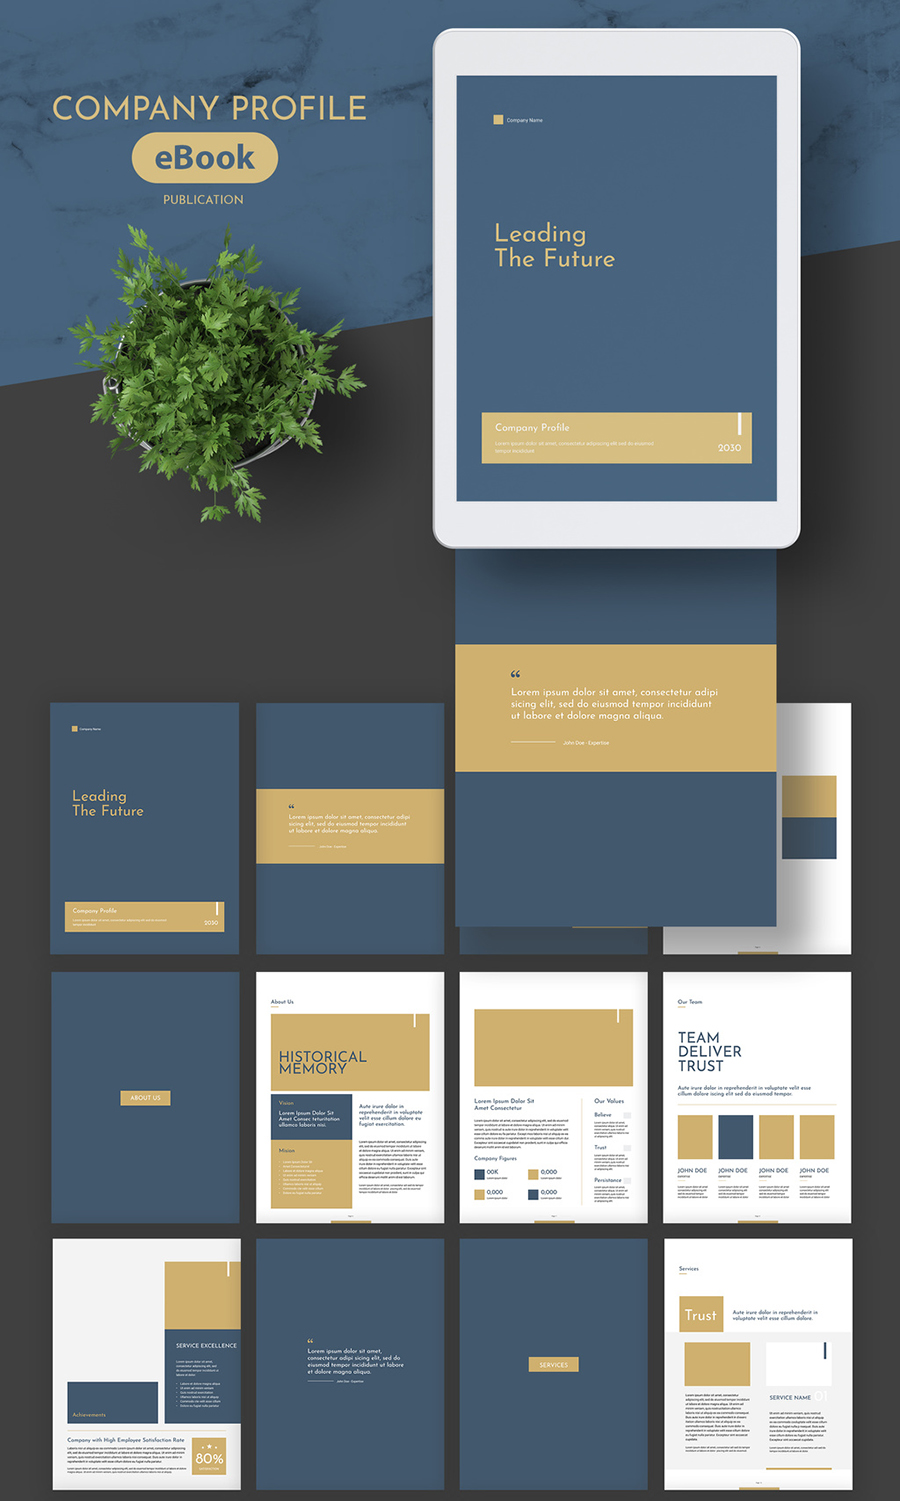 eBook Company Profile Layout with Gold and Dark Teal Accents